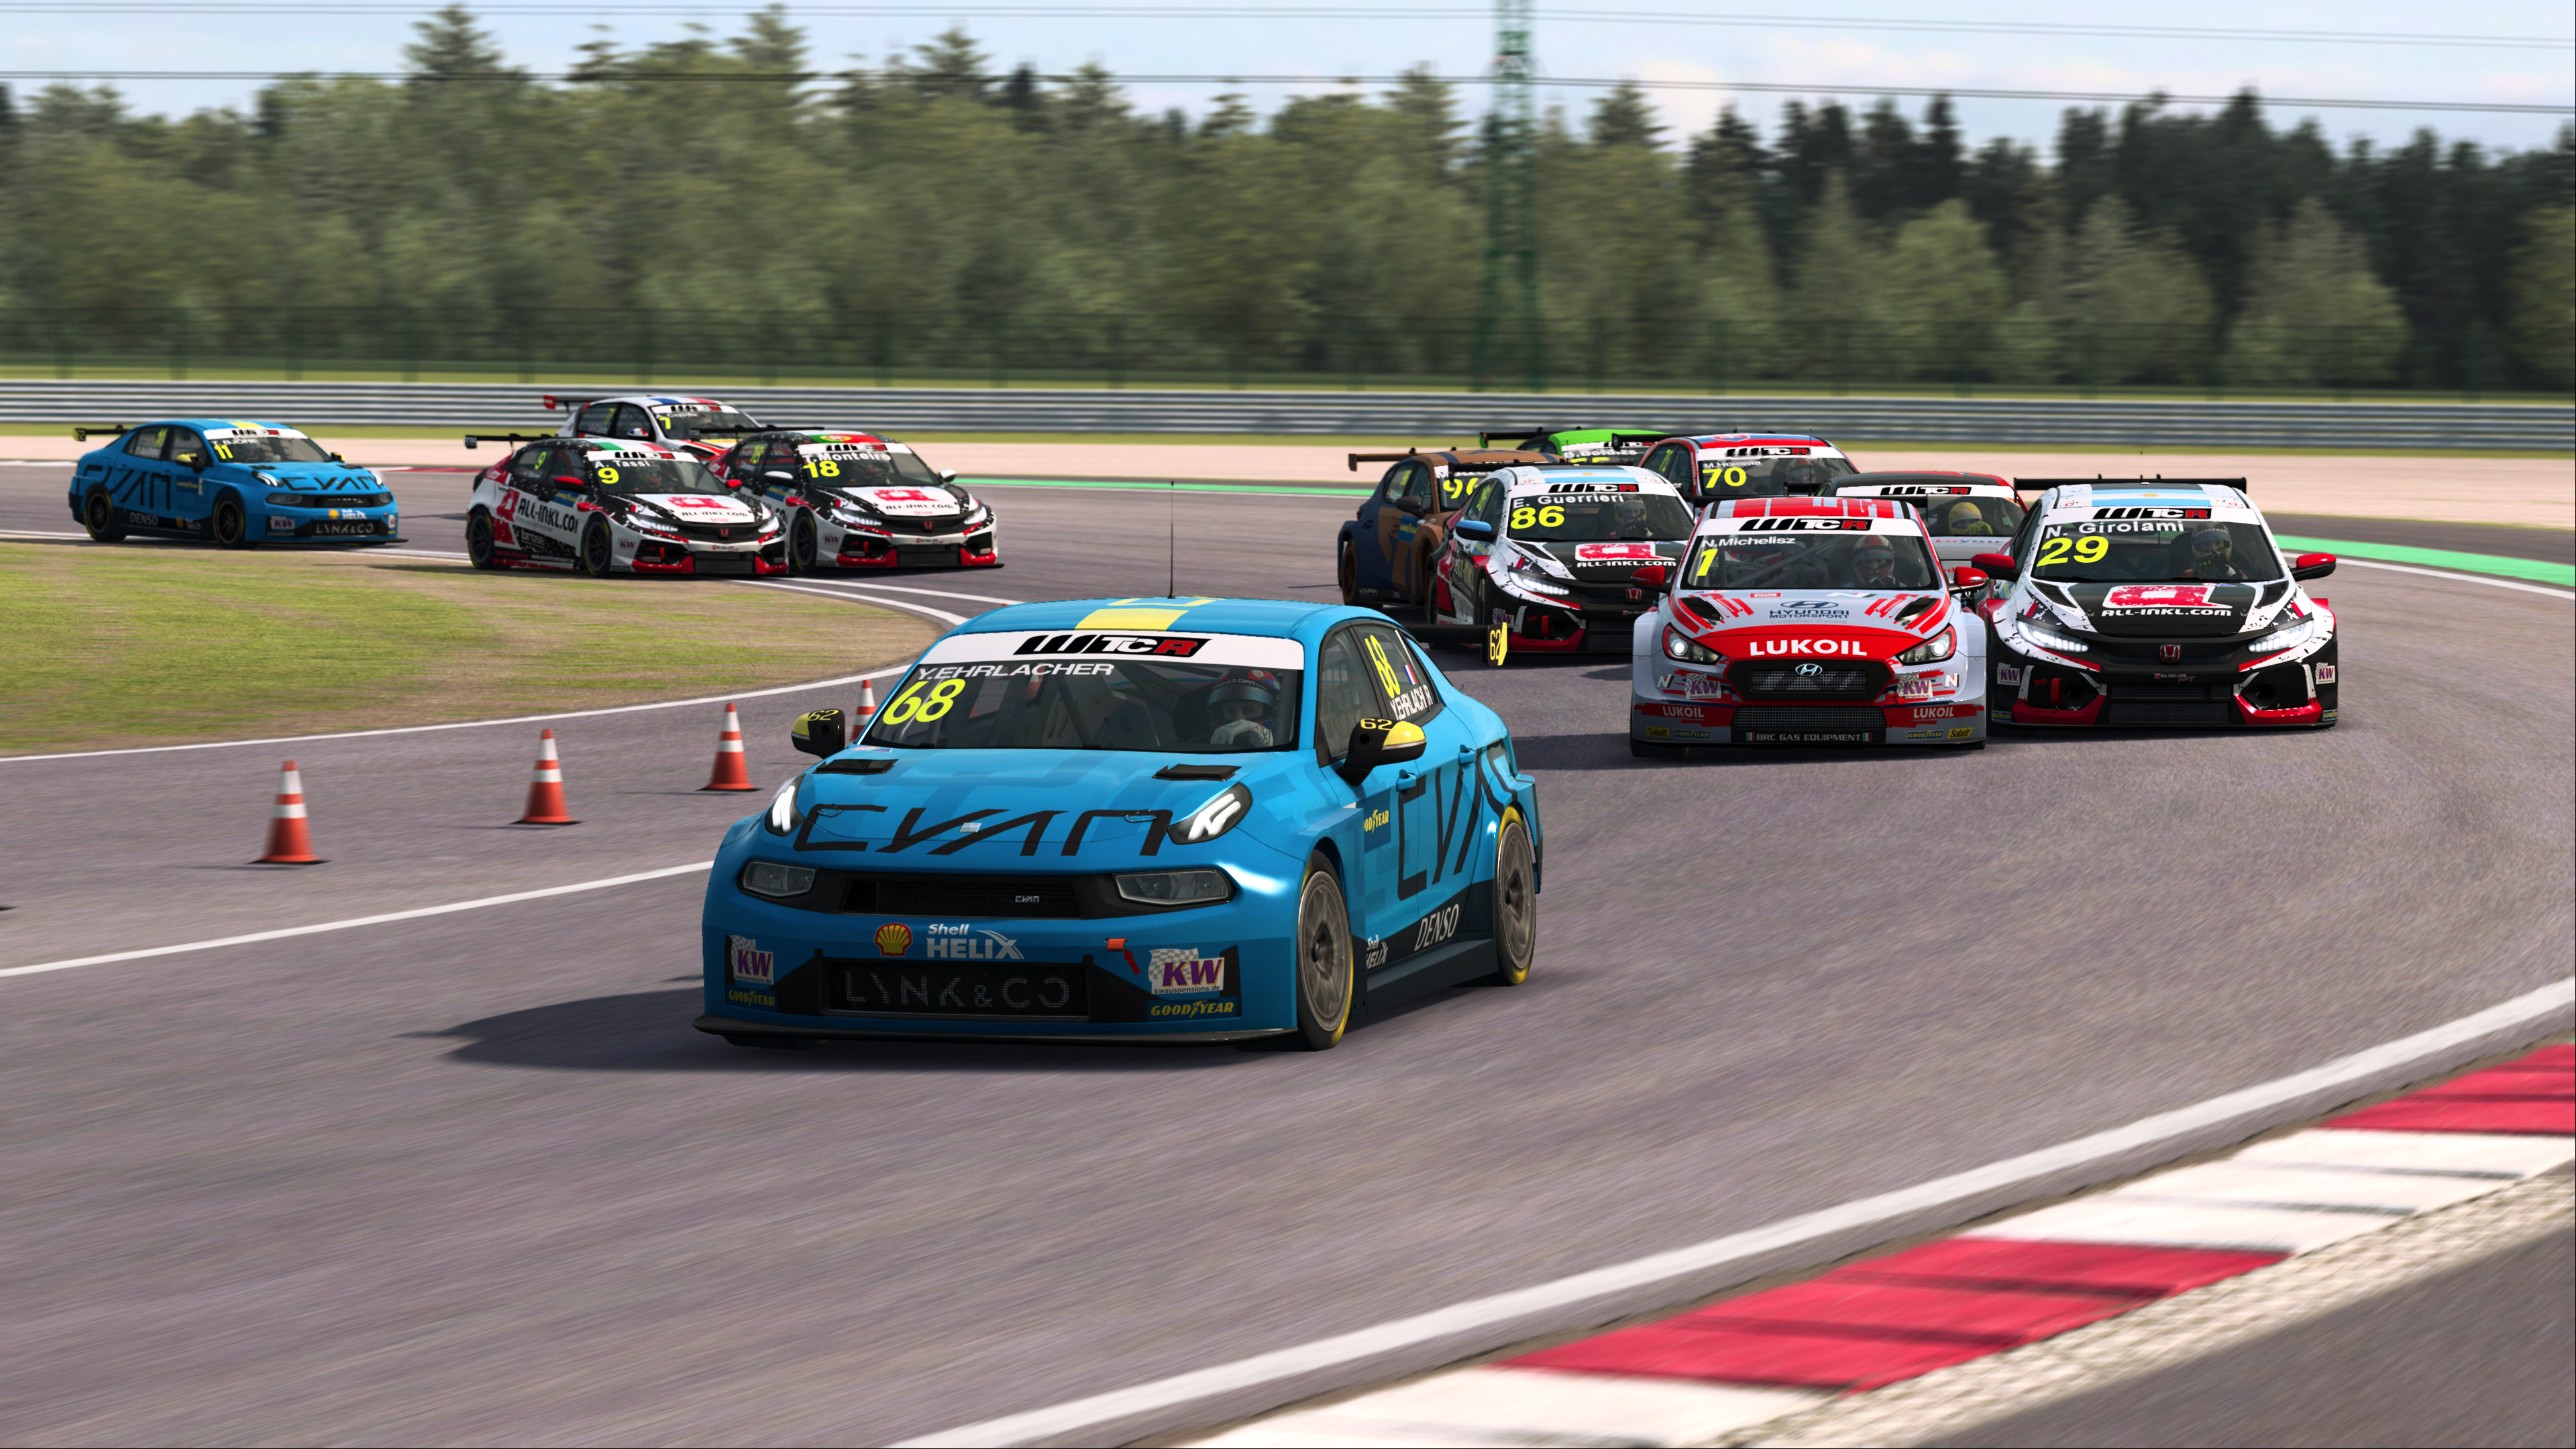 Preview: Ehrlacher on a charge as WTCR drivers prepare to #RaceAtHome in Pre-season Esports Championship